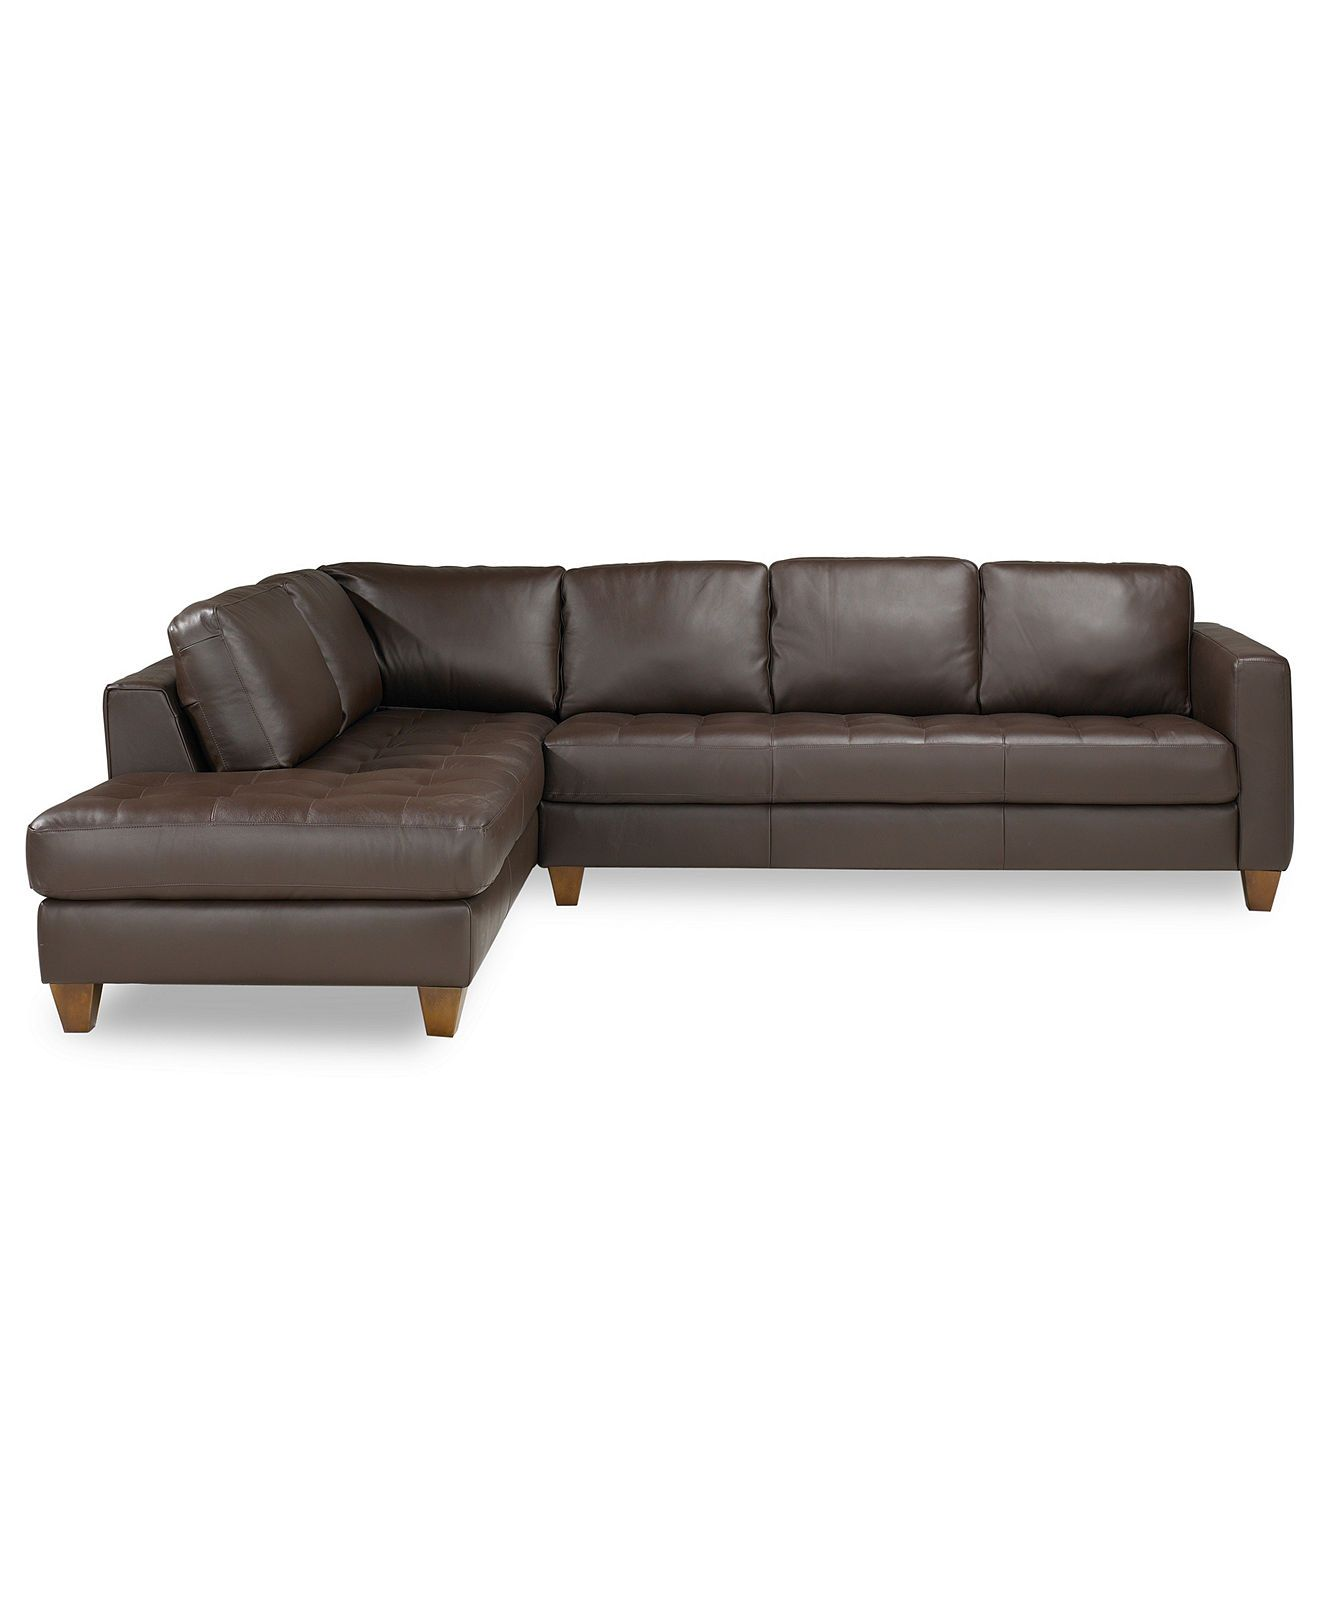 Milano Leather 2 Piece Chaise Sectional Sofa Furniture Macy S Leather Living Room Furniture Sectional Sofa Leather Sectional Sofas